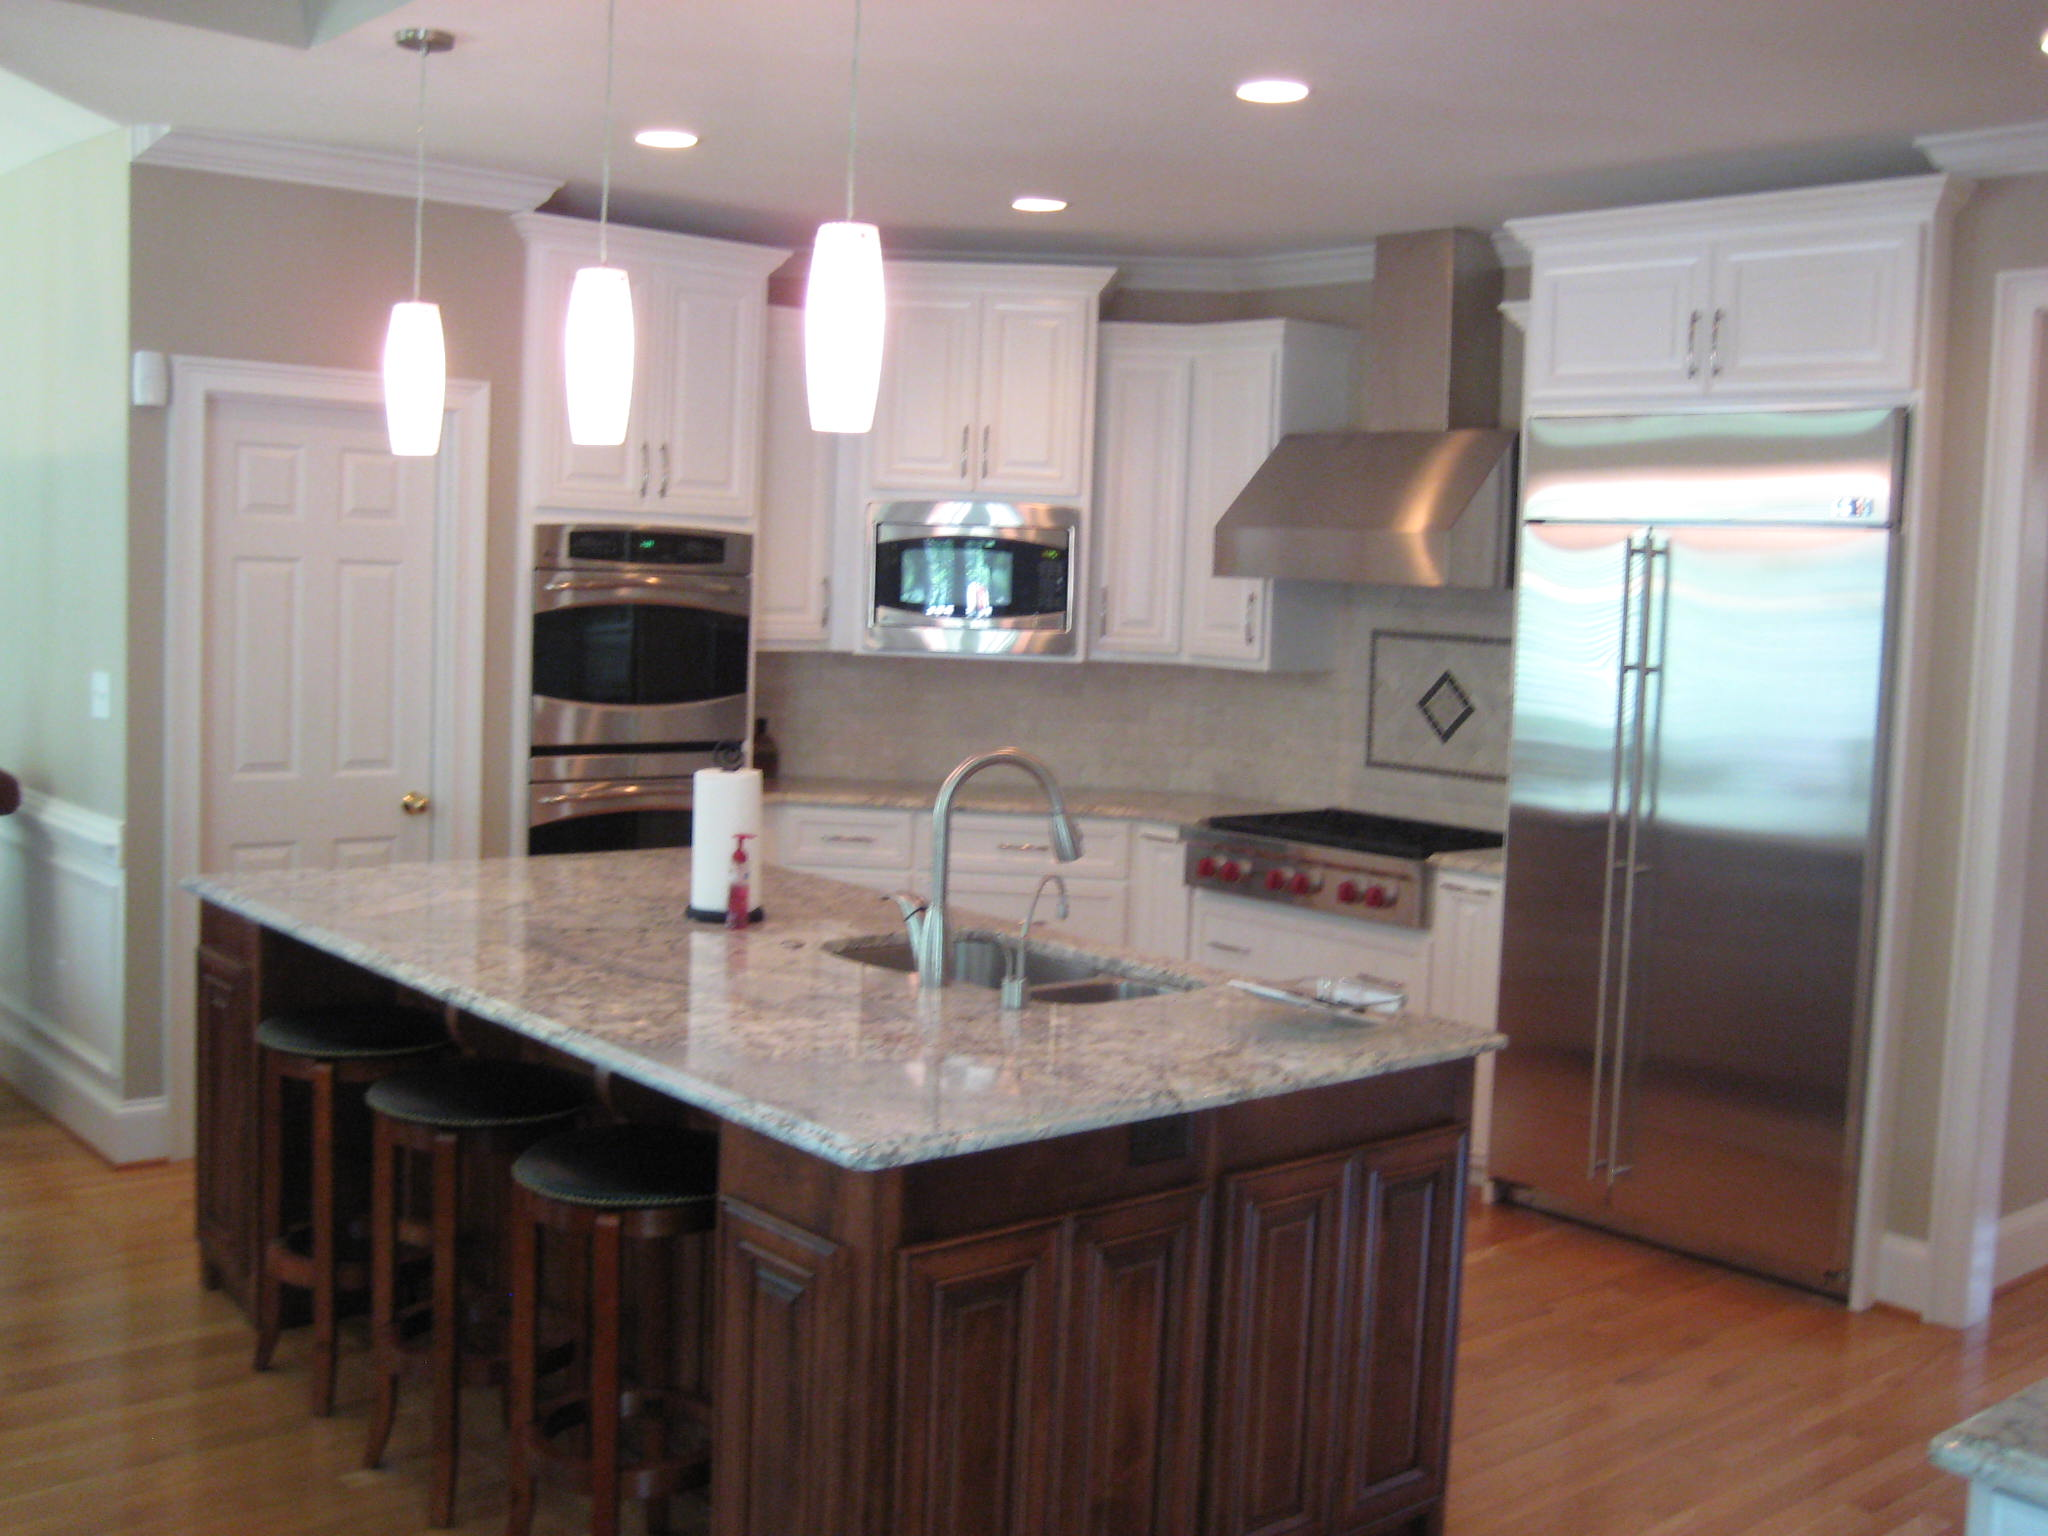 Kitchen renovation with appliances, granite and more.